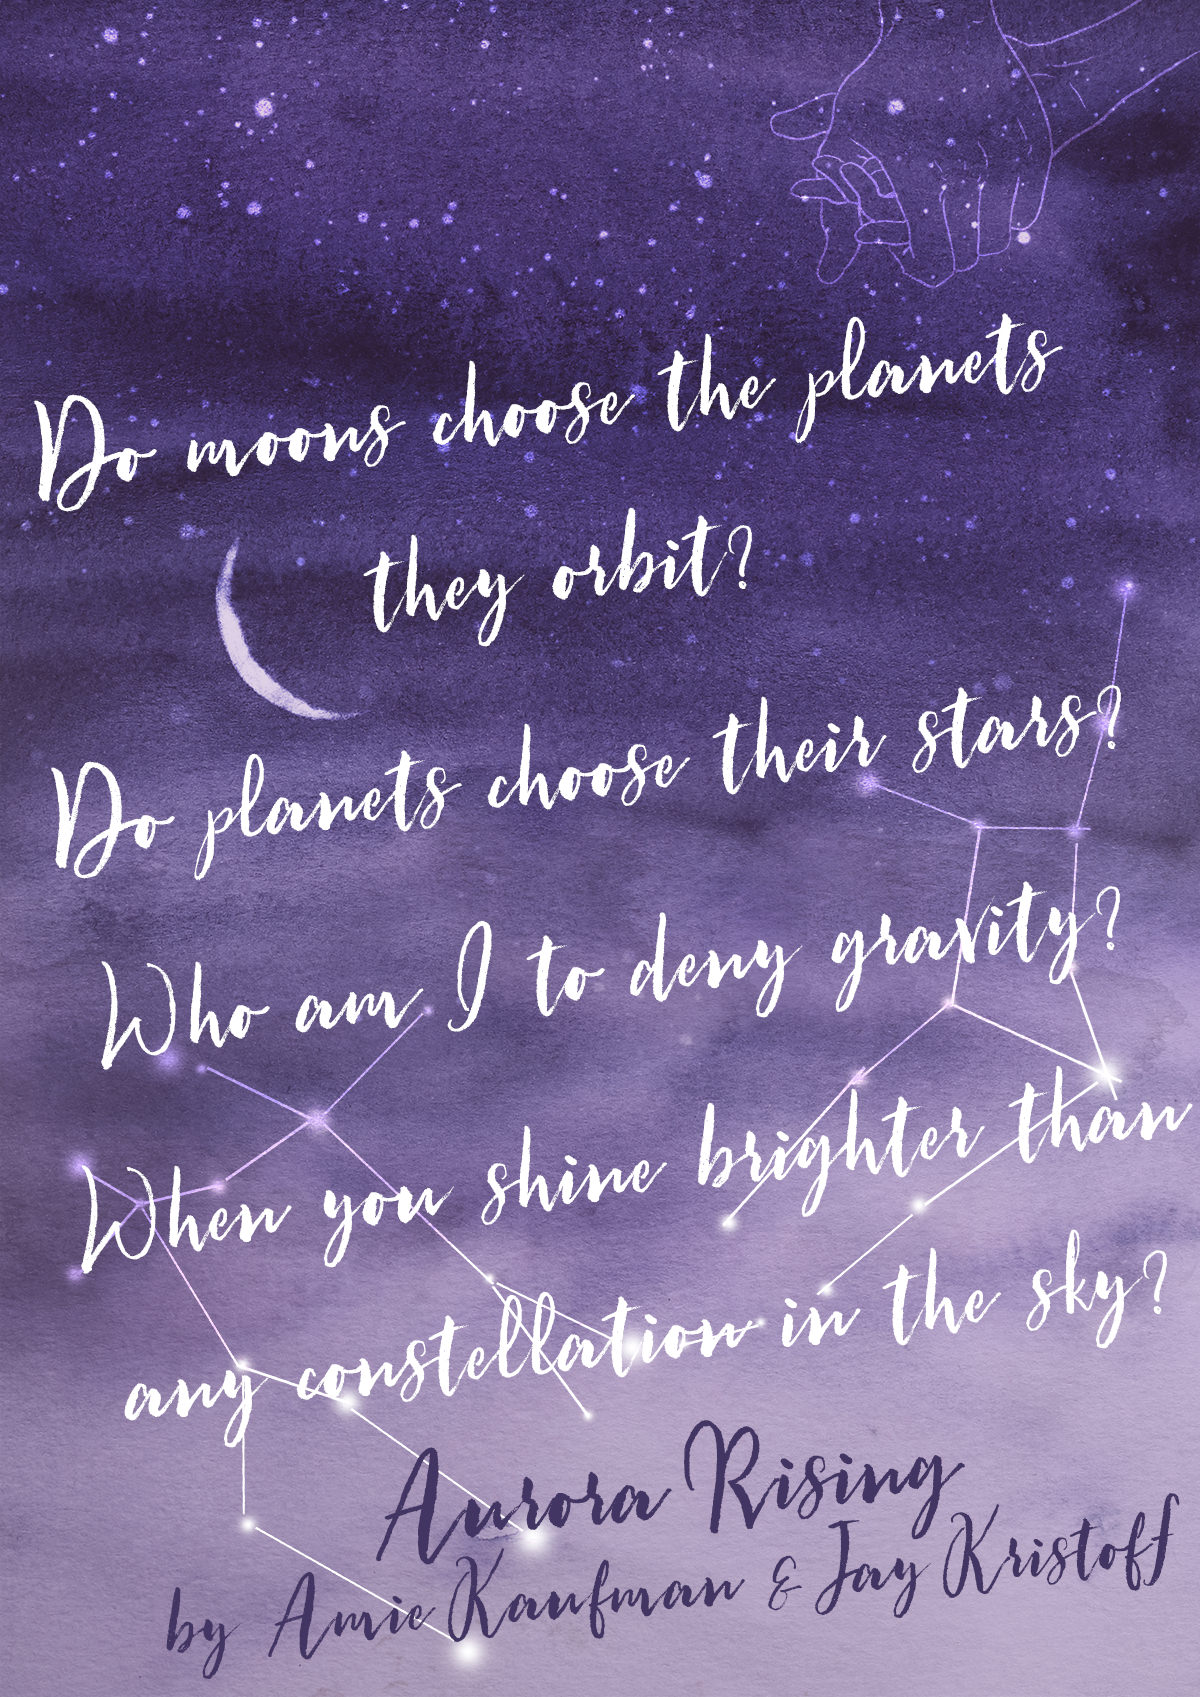 Deny Gravity - Aurora Rising by Amie Kaufman Jay Kristoff Quote